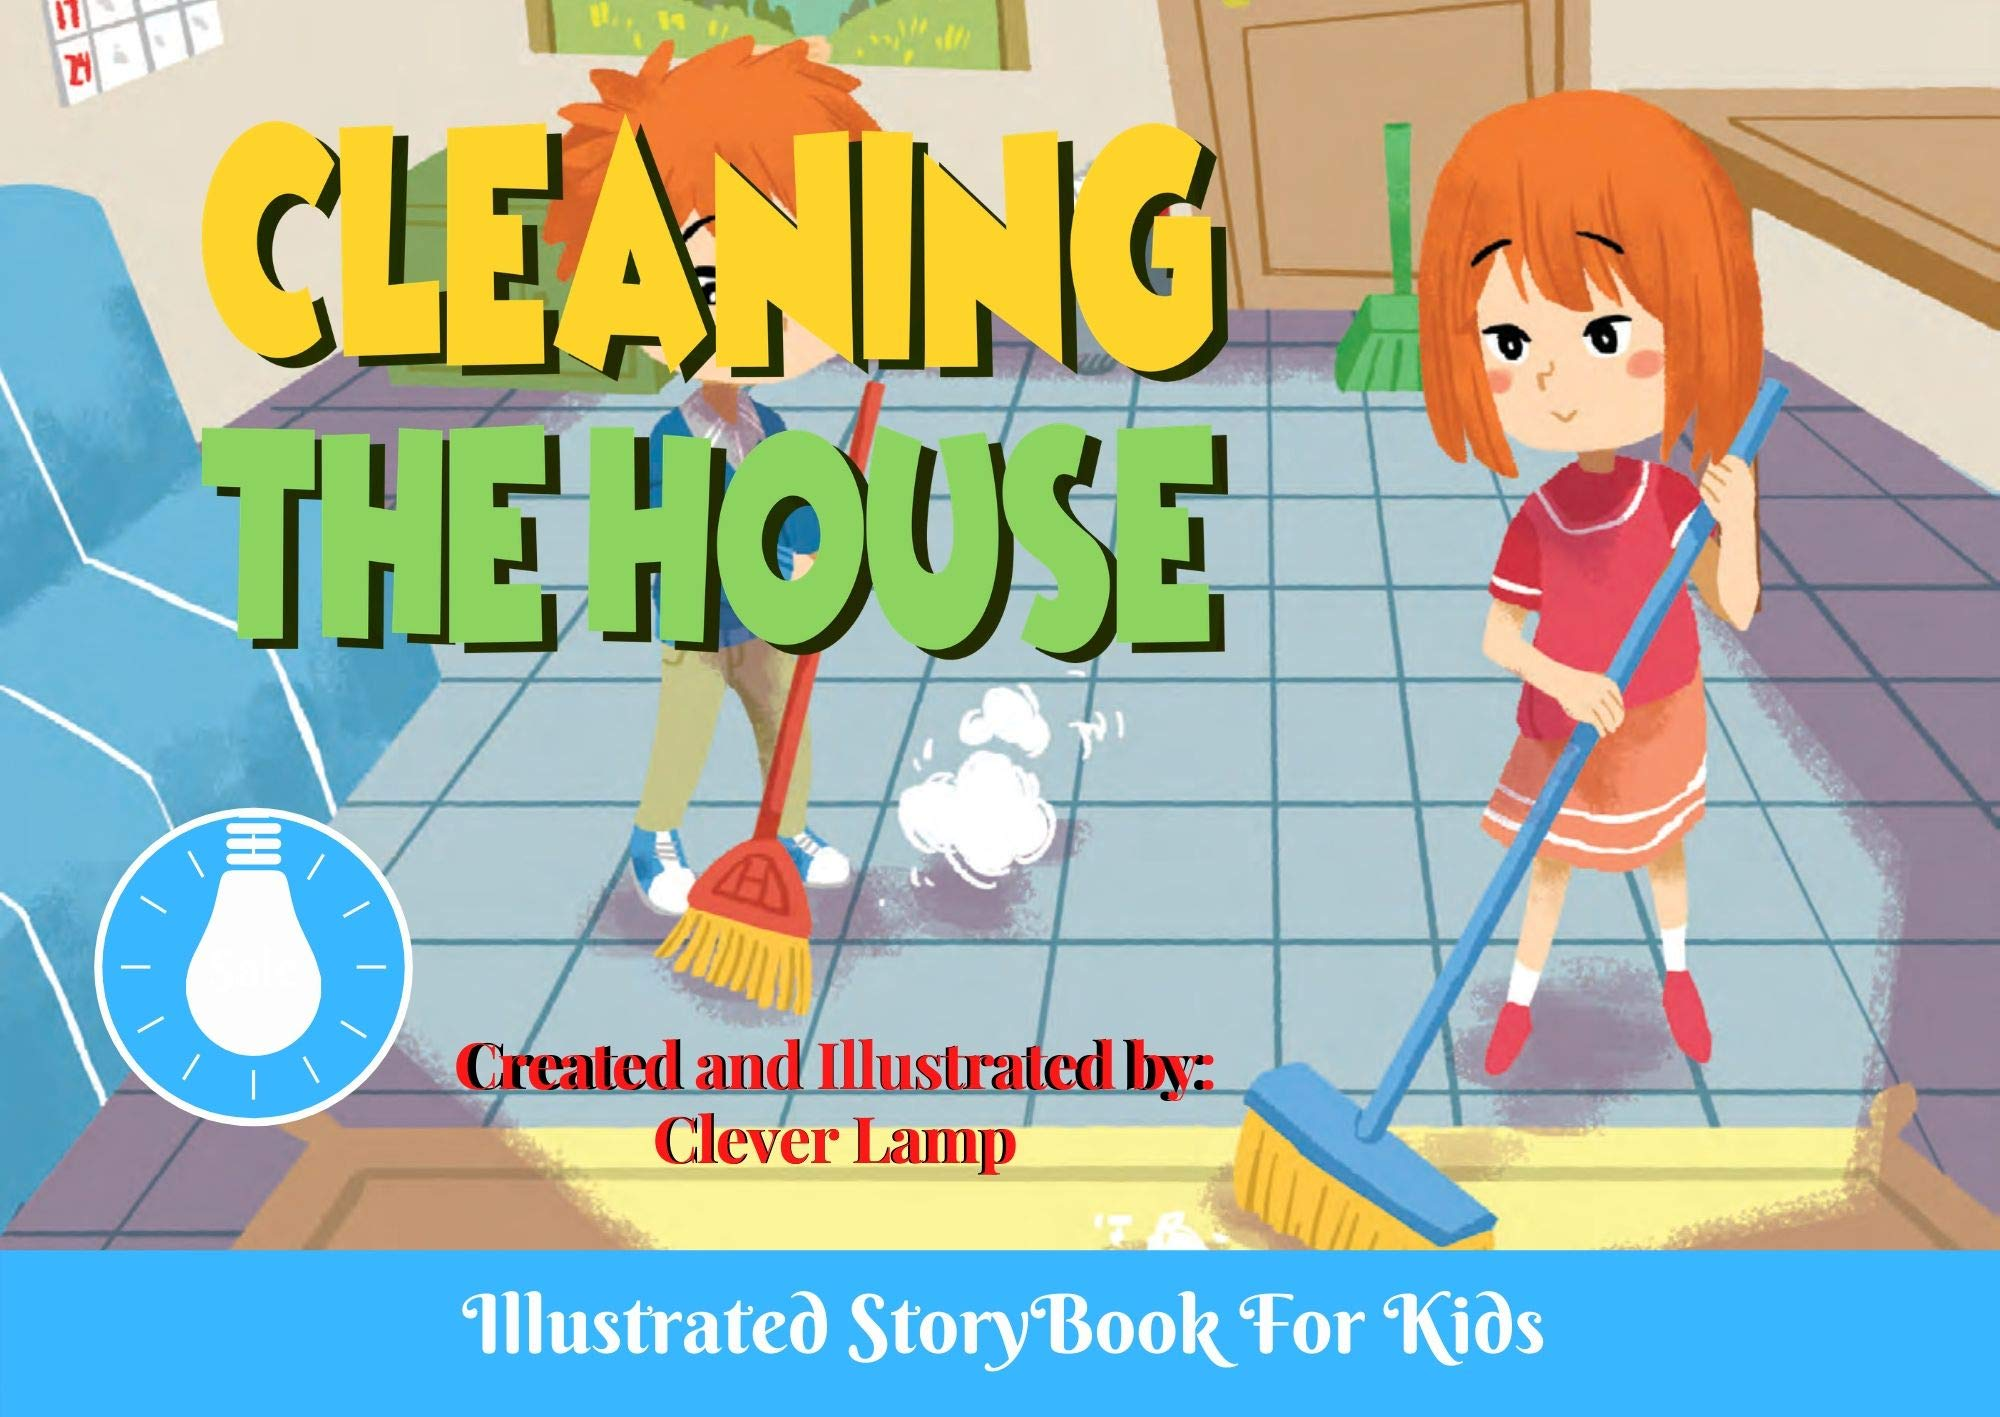 Cleaning The House: Before Bed Children's Book- Cute story - Easy reading Illustrations -Cute Educational Adventure .